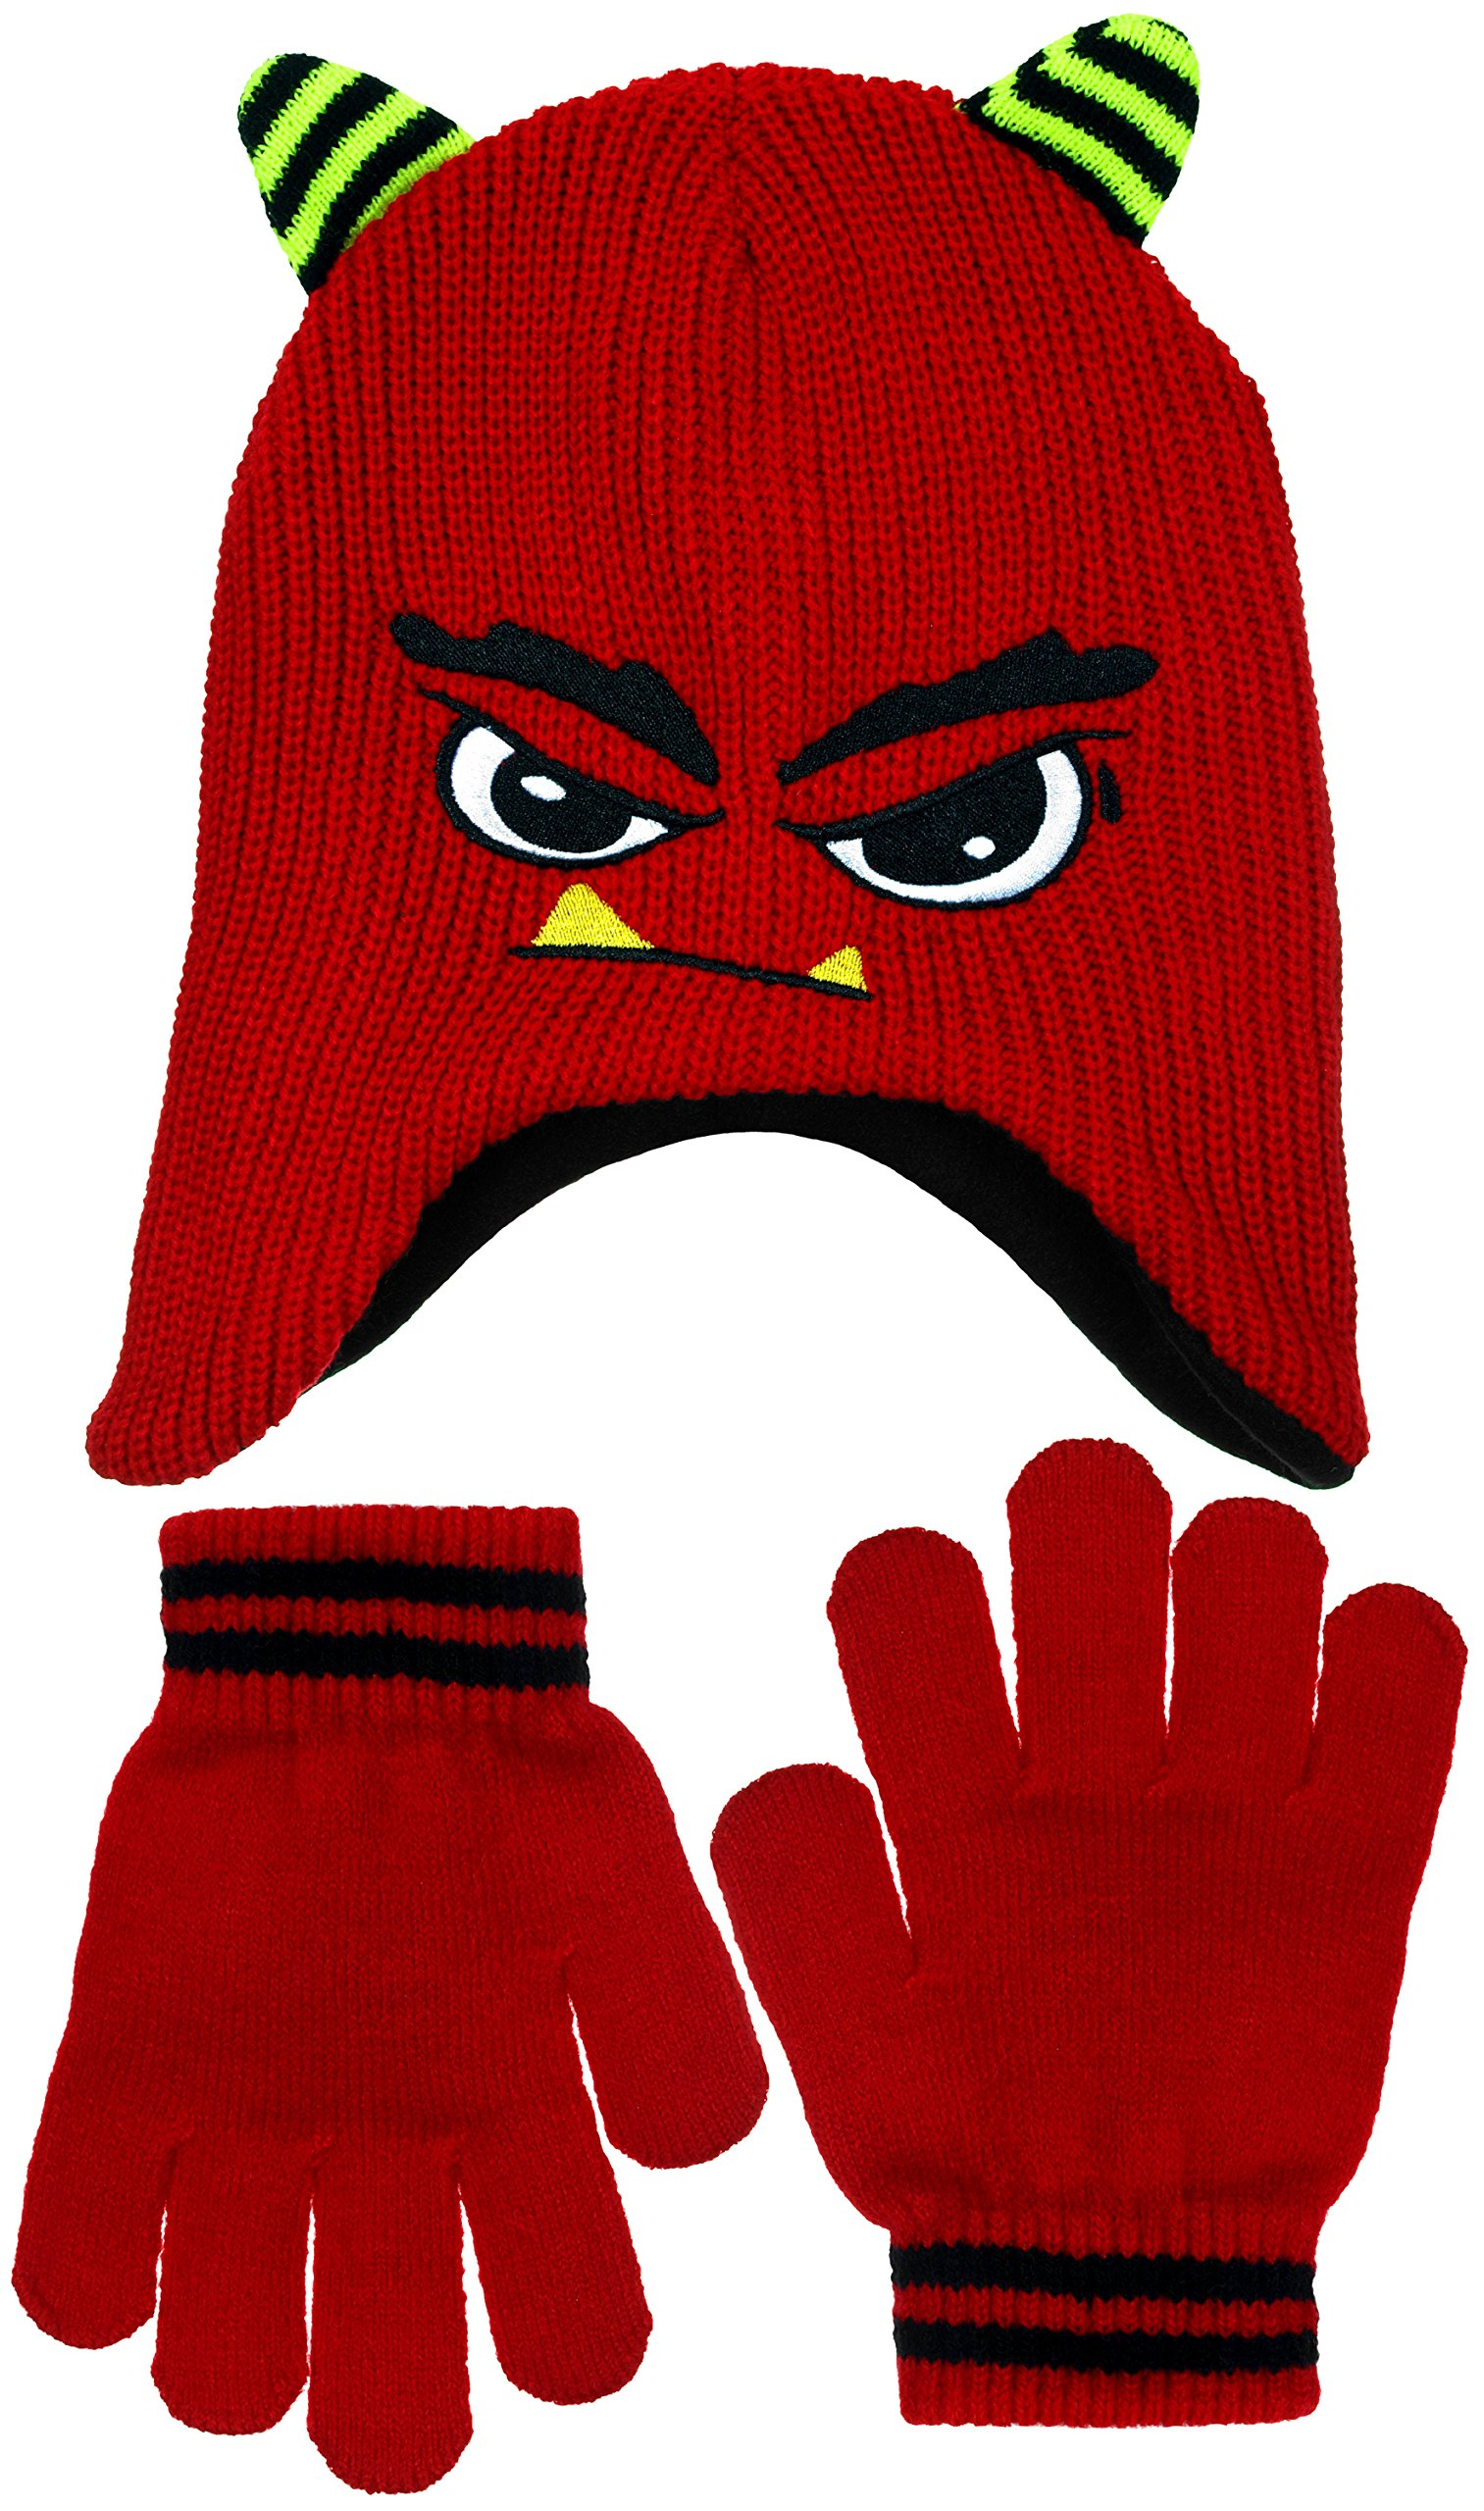 Boys Meanie Monster Face Fleece Lined Knit Beanie & Gloves Set in Blue or Red (Red)